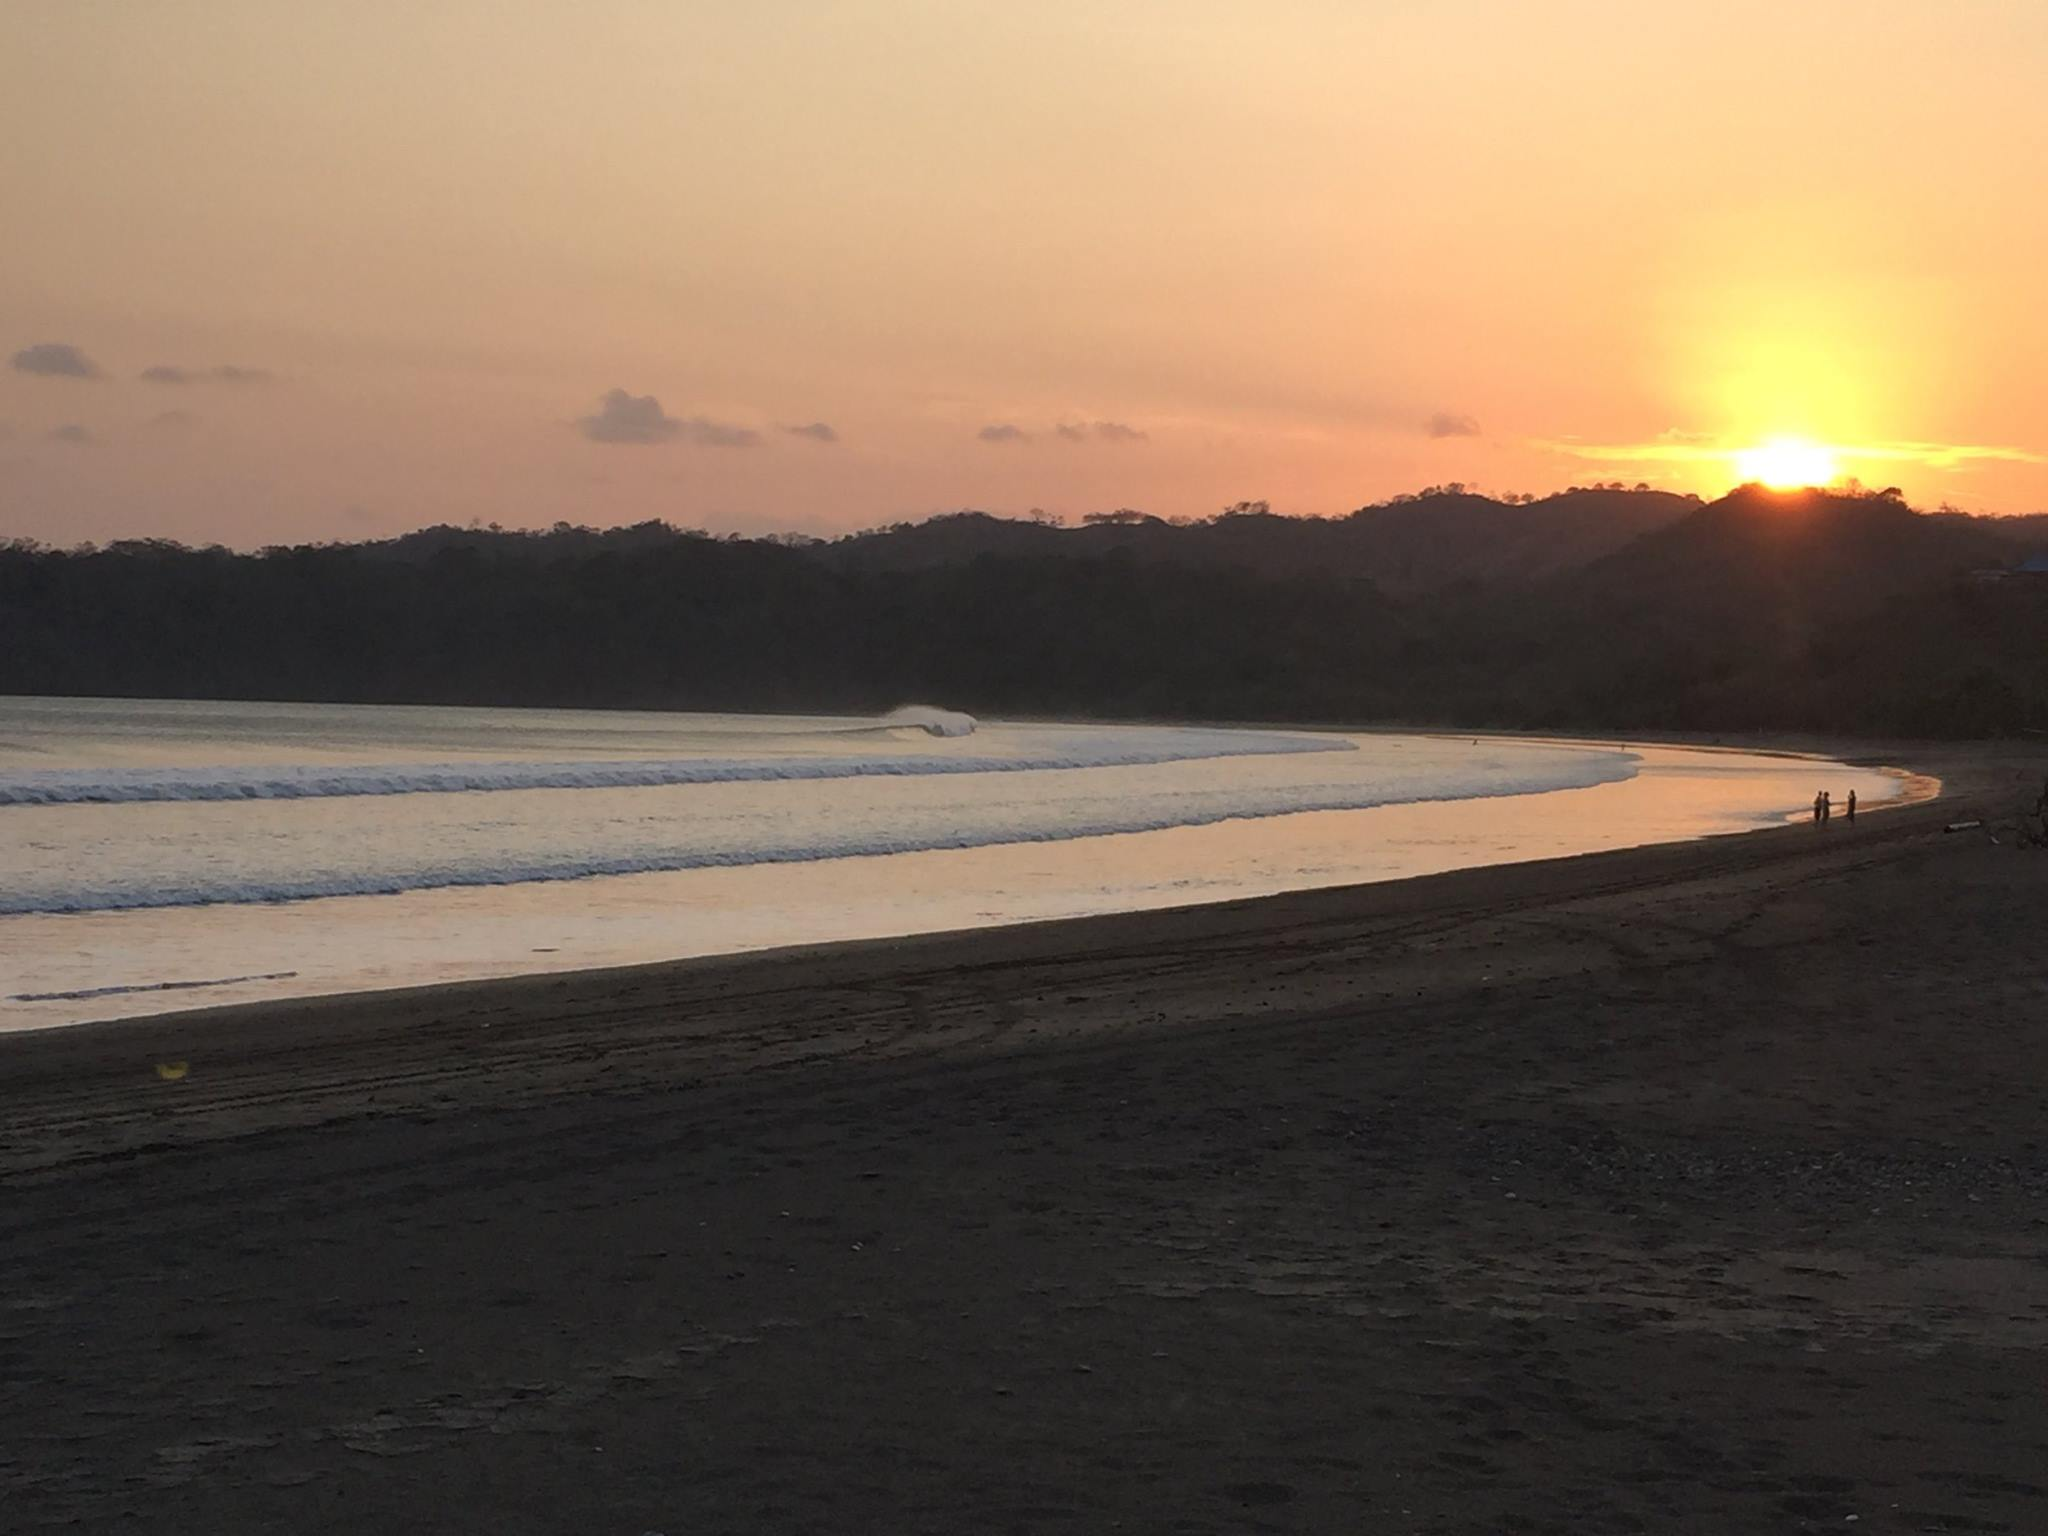 Sunset down the beach near the cove. Amber waves appeared virtually every night.